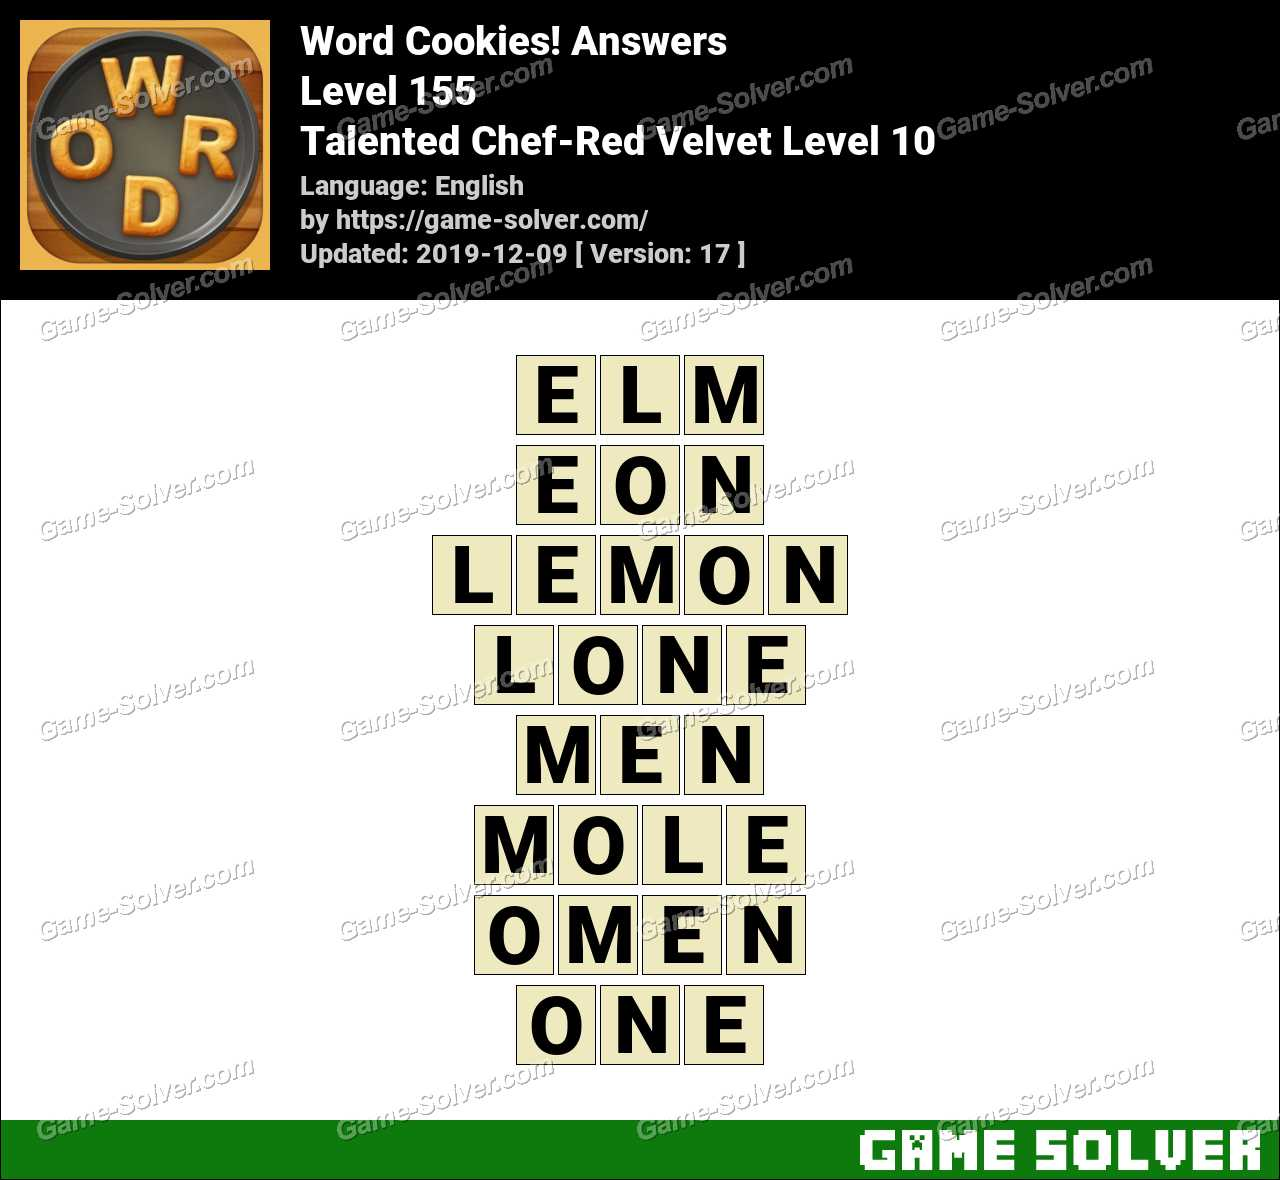 Word Cookies Talented Chef-Red Velvet Level 10 Answers